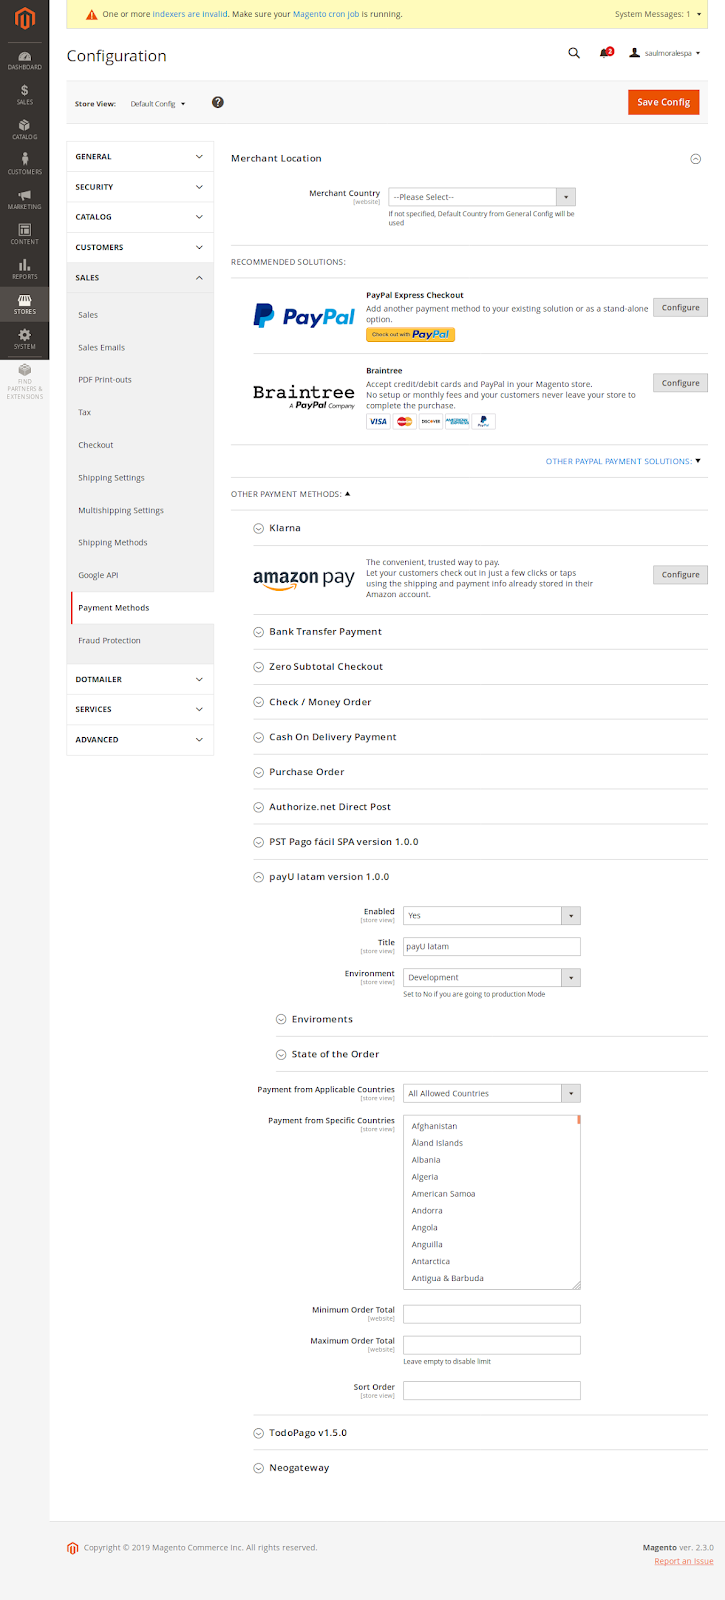 Enter the configuration menu of the payment method